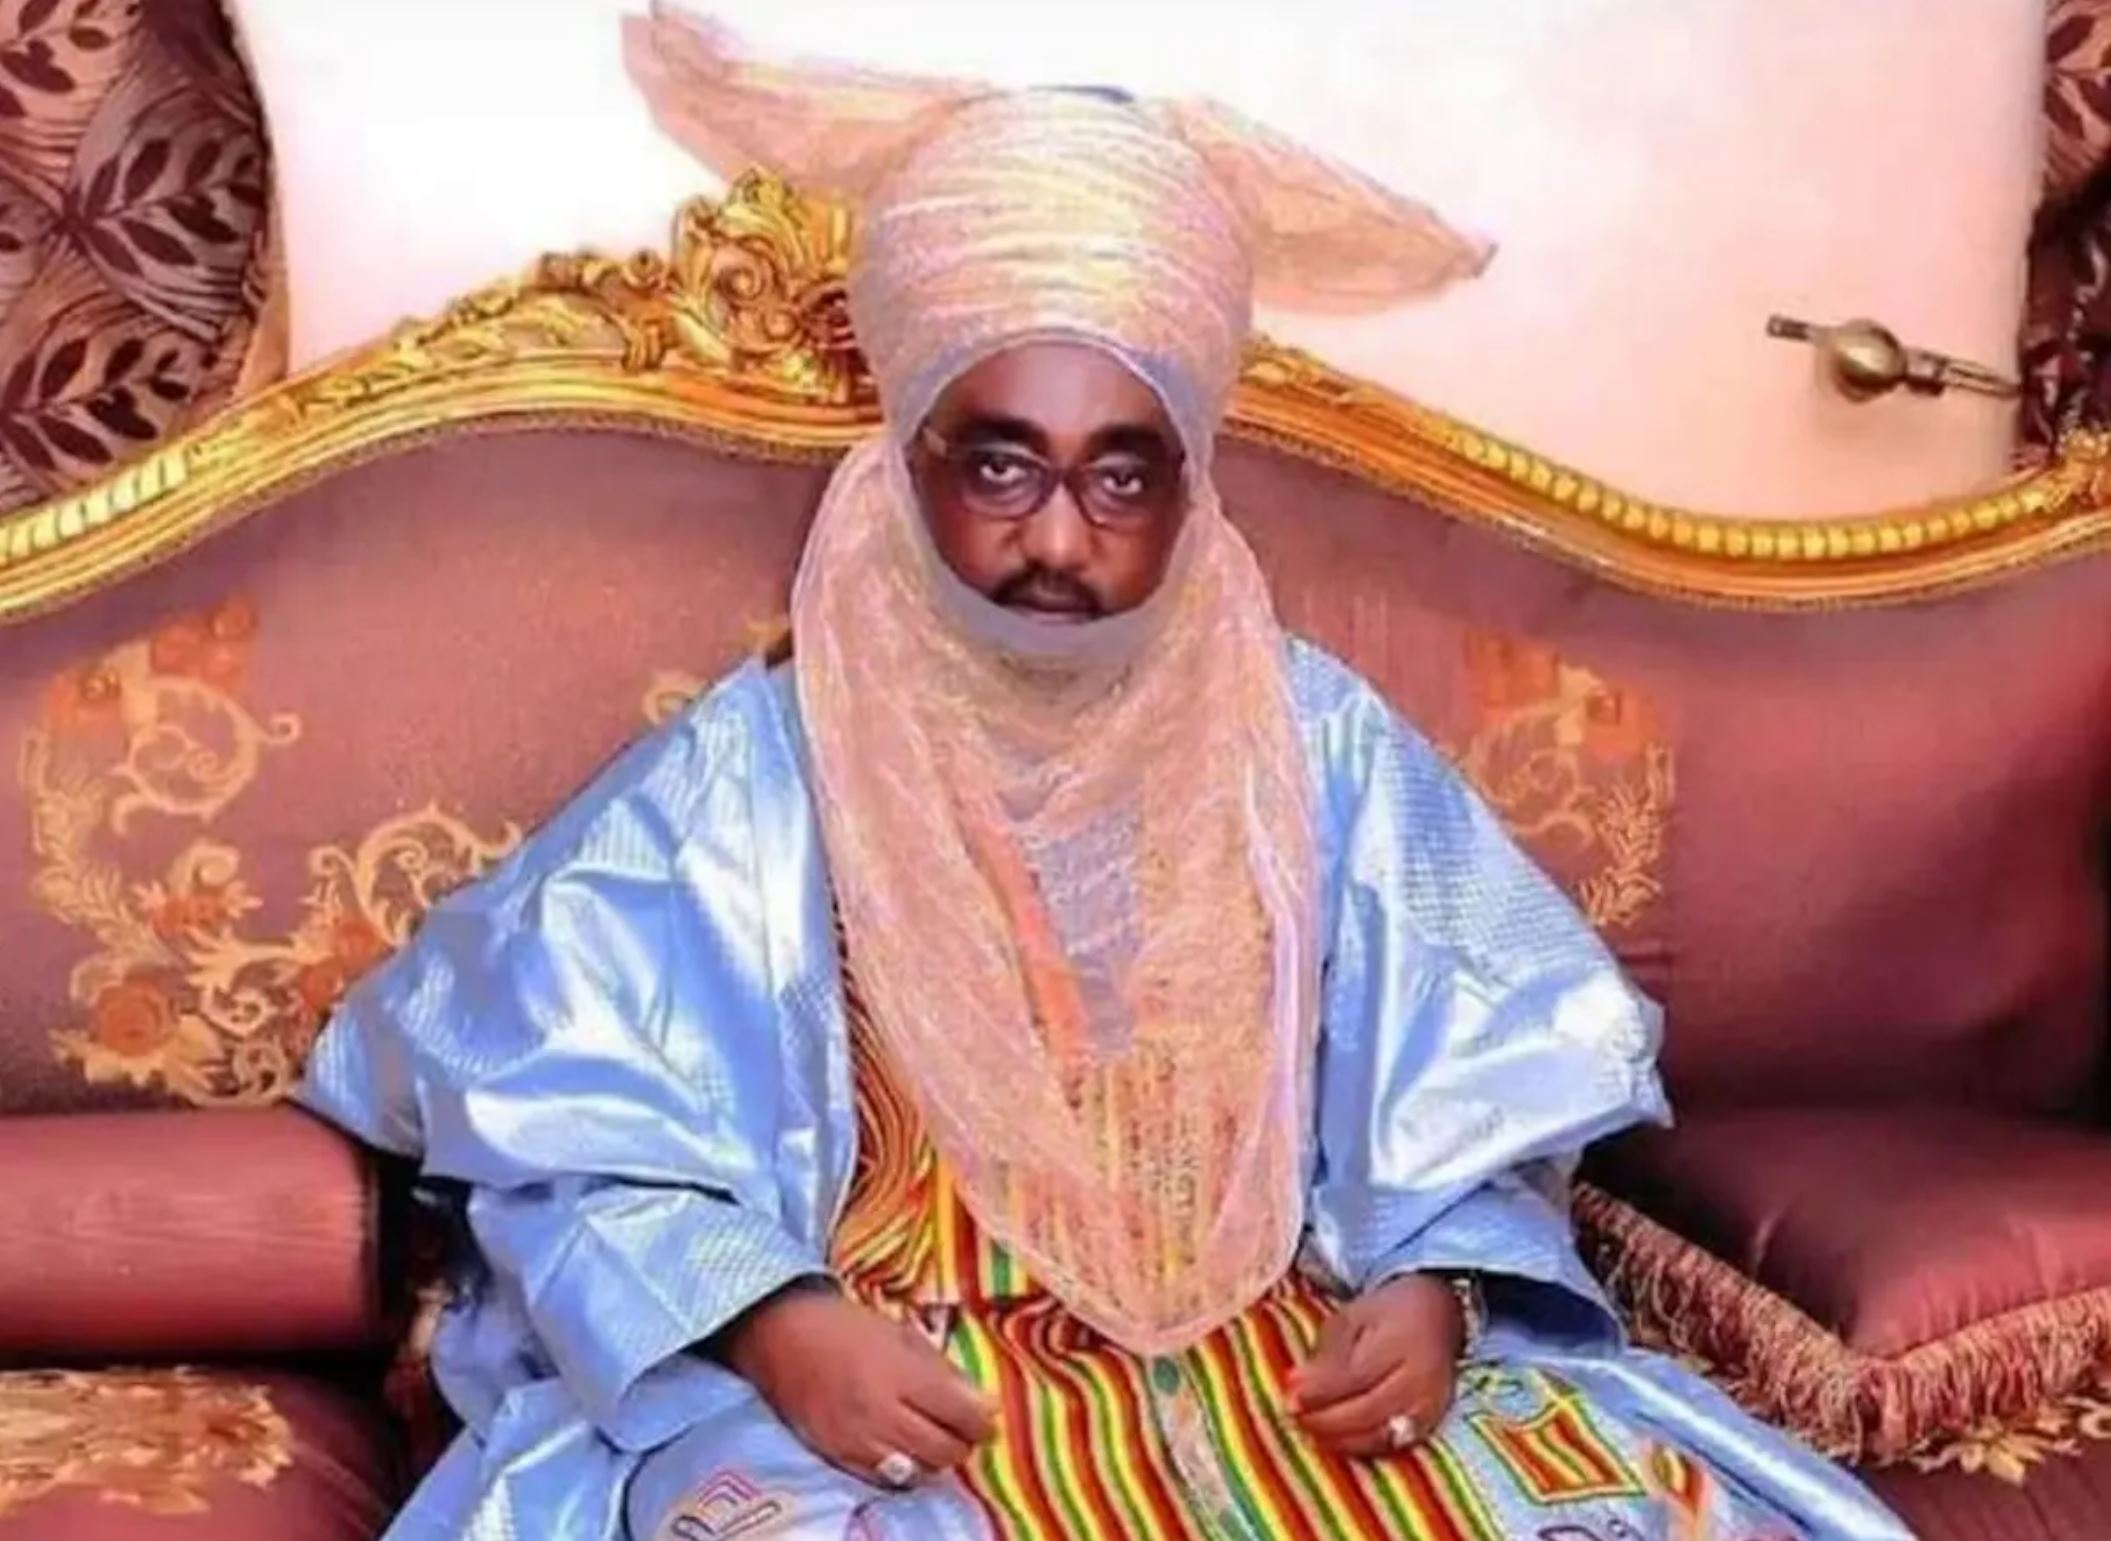 Kebbi Deputy Governor felicitates with new Emir of Zazzau, calls for support